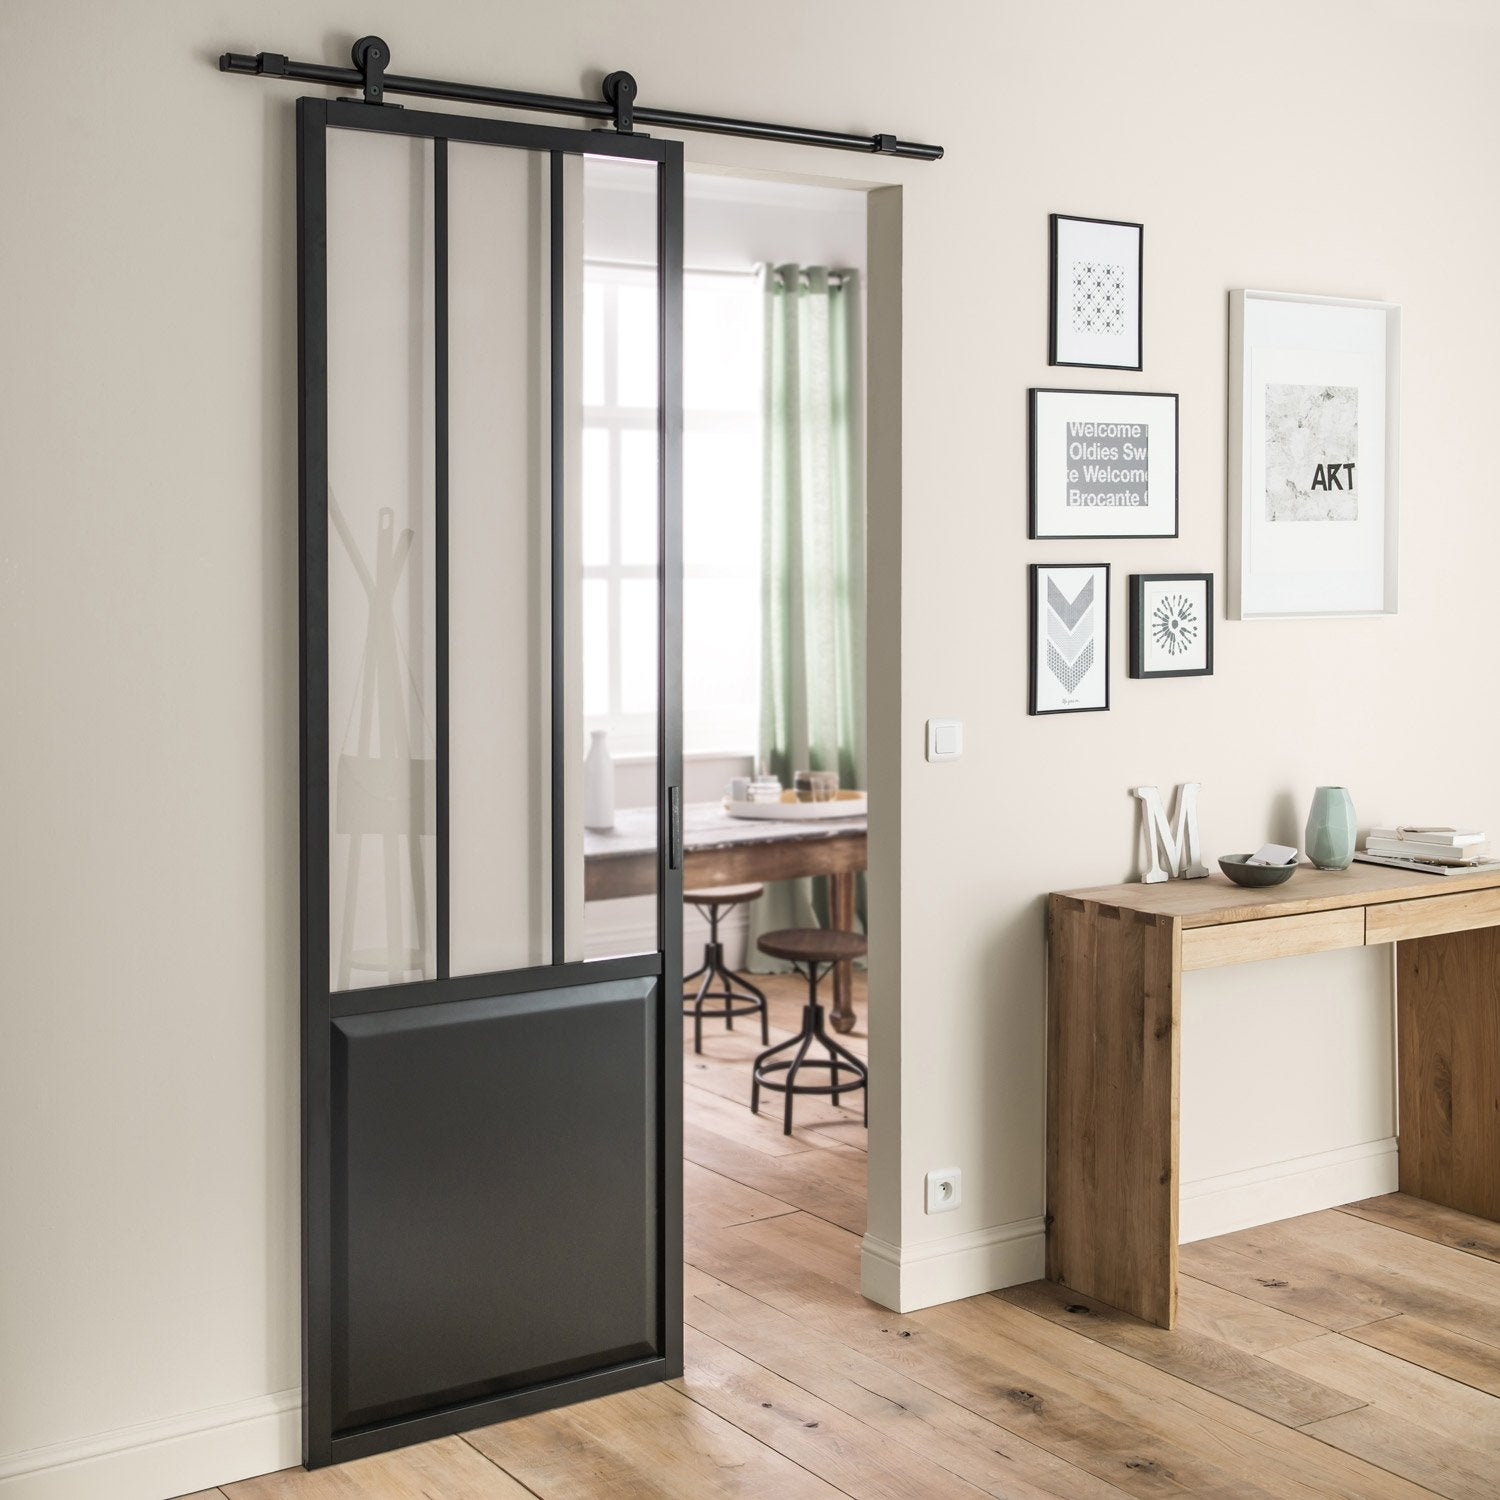 Ensemble porte coulissante atelier mdf rev tu avec le rail for Porte verriere prix